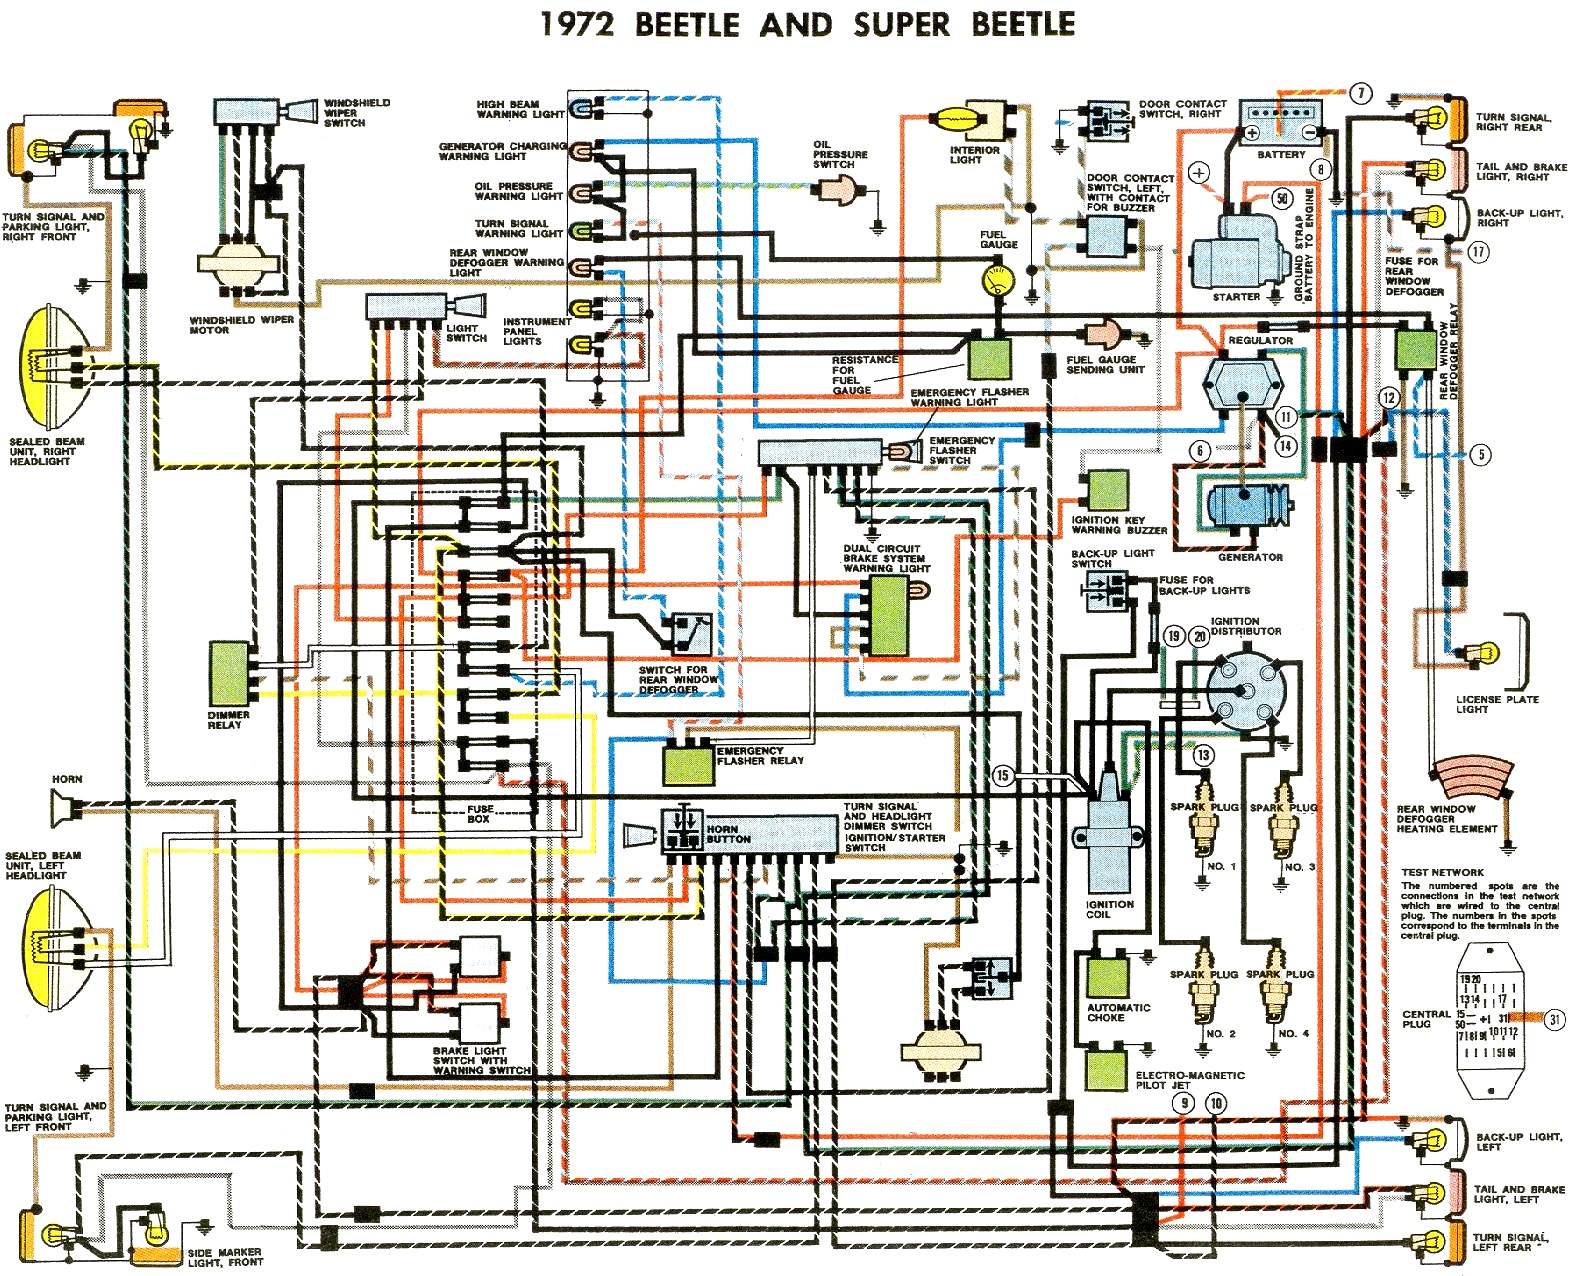 1972 Vw Super Beetle Wiring Diagram Will Be A Thing 1971 Pontiac Diagrams Thegoldenbug Com Rh